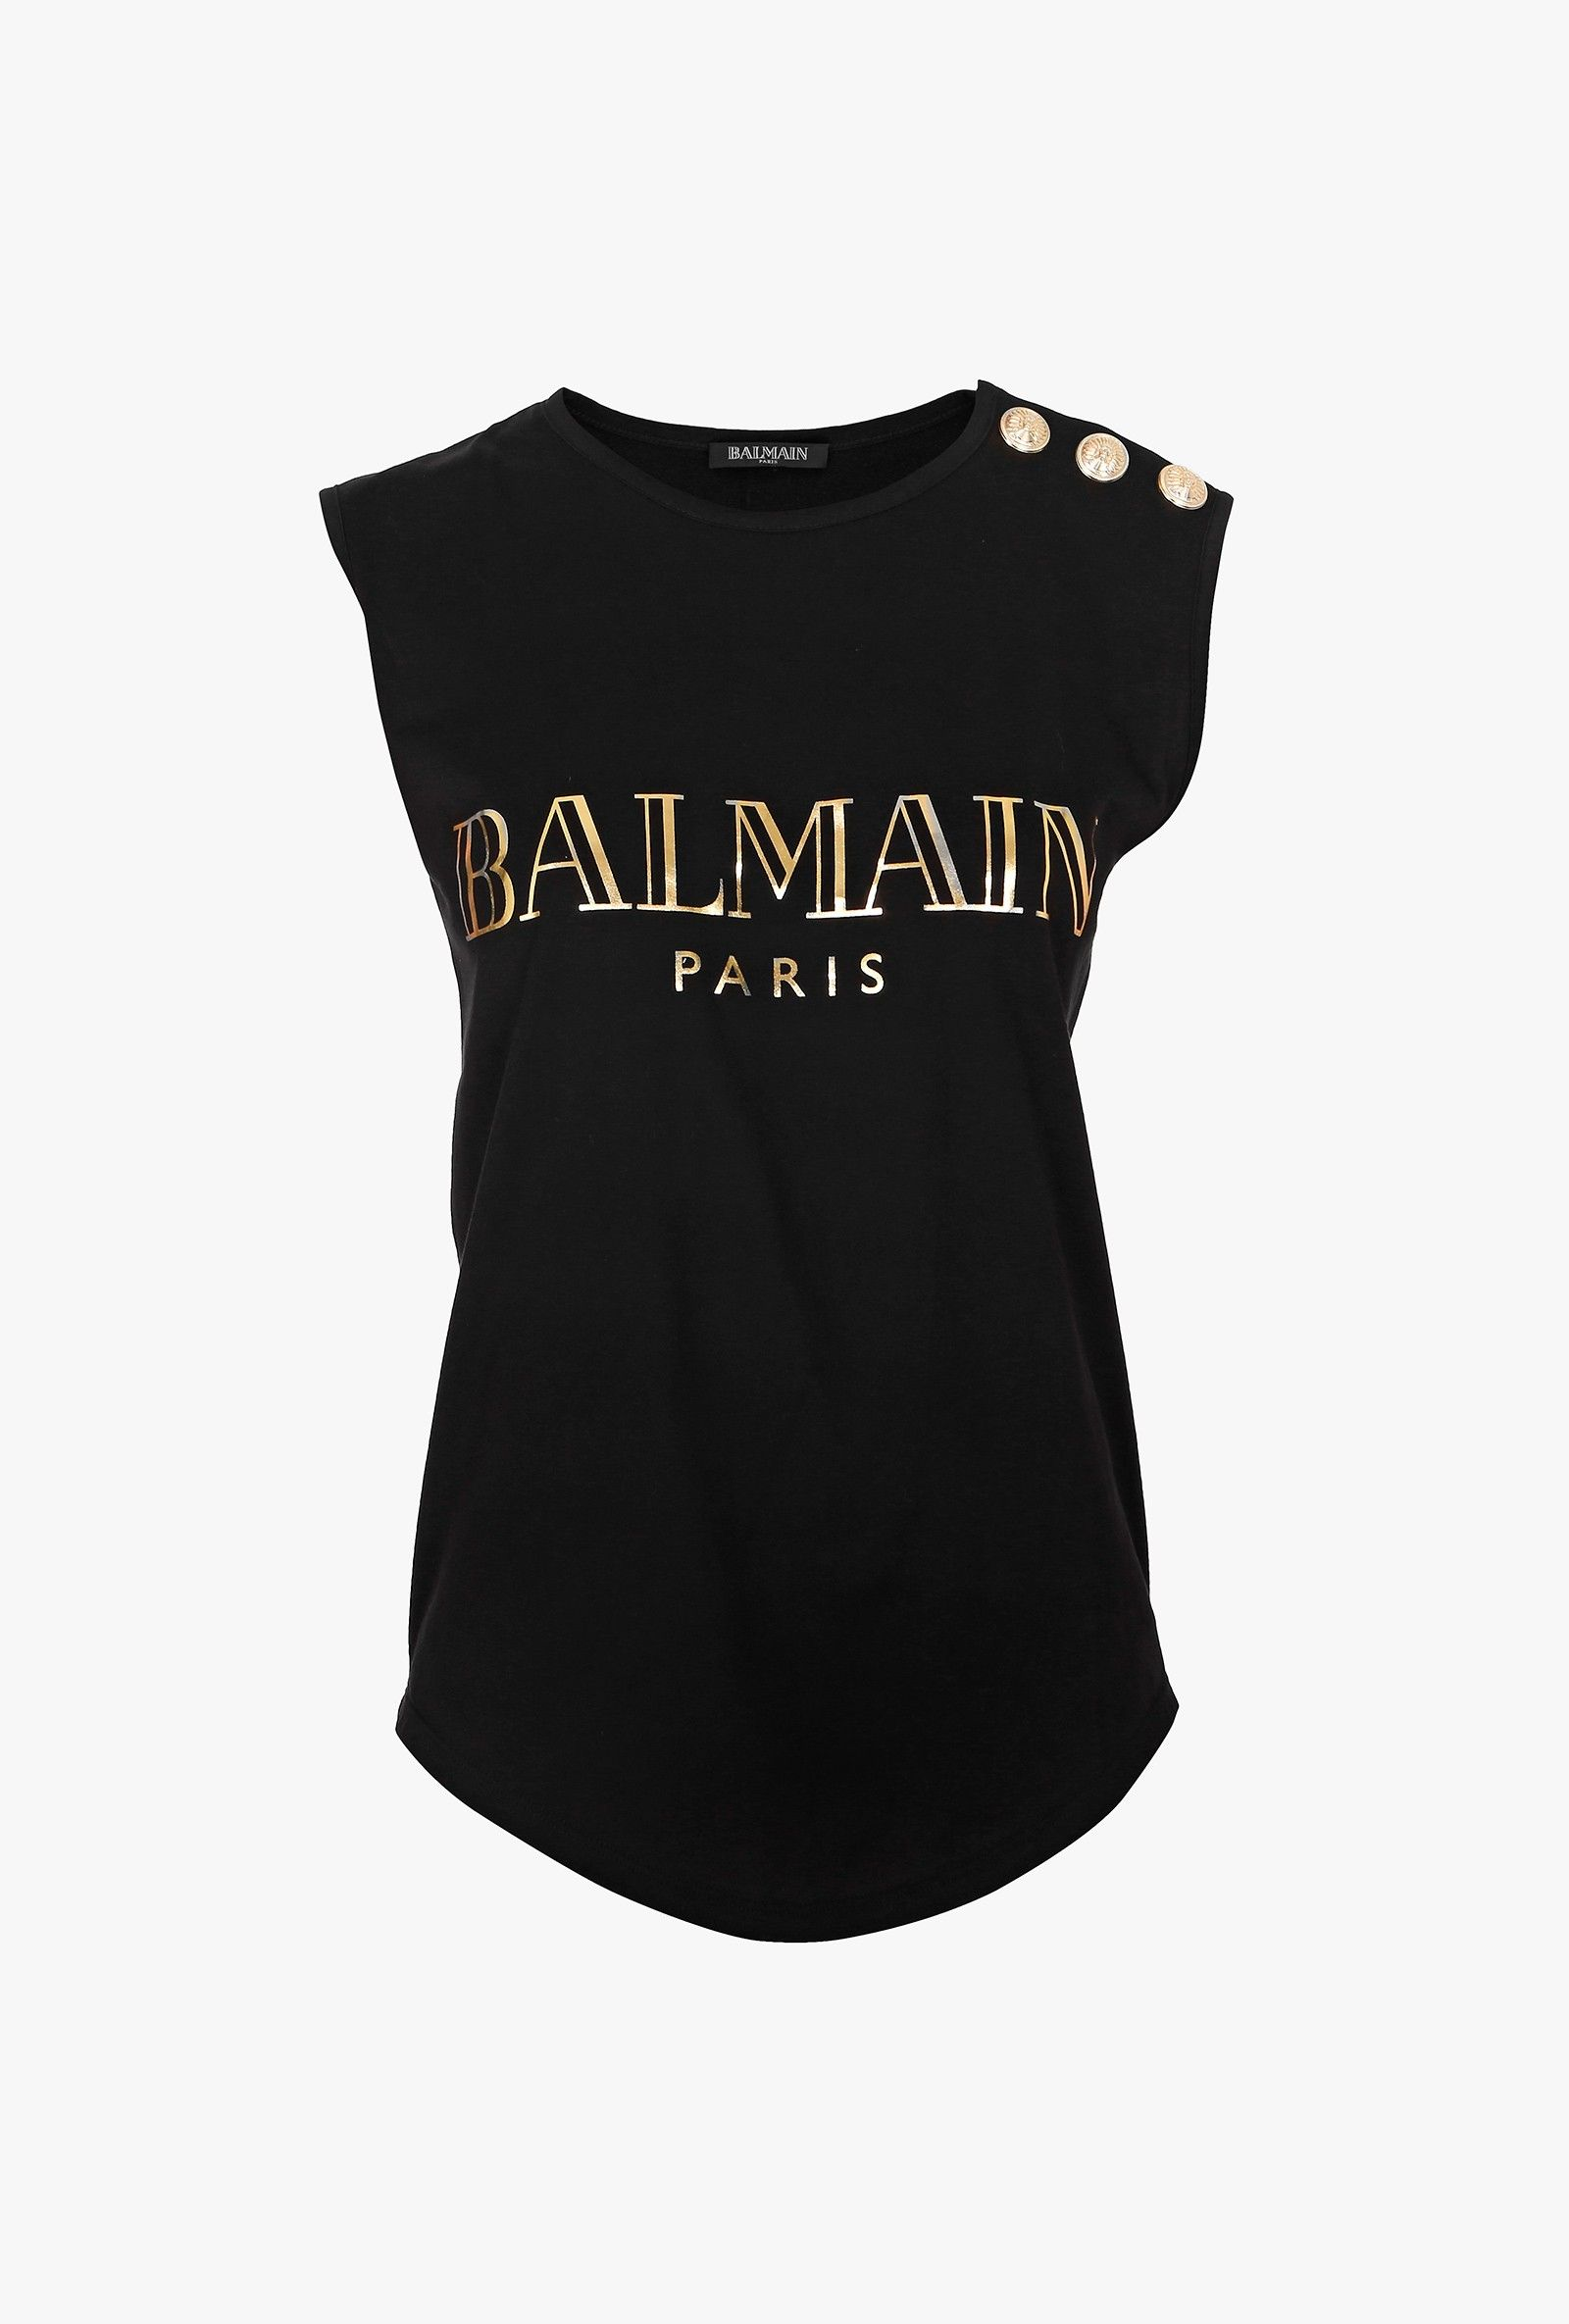 0617268c5e129 Balmain - Sleeveless gold-tone silkscreen logo cotton T-shirt - Women s tops